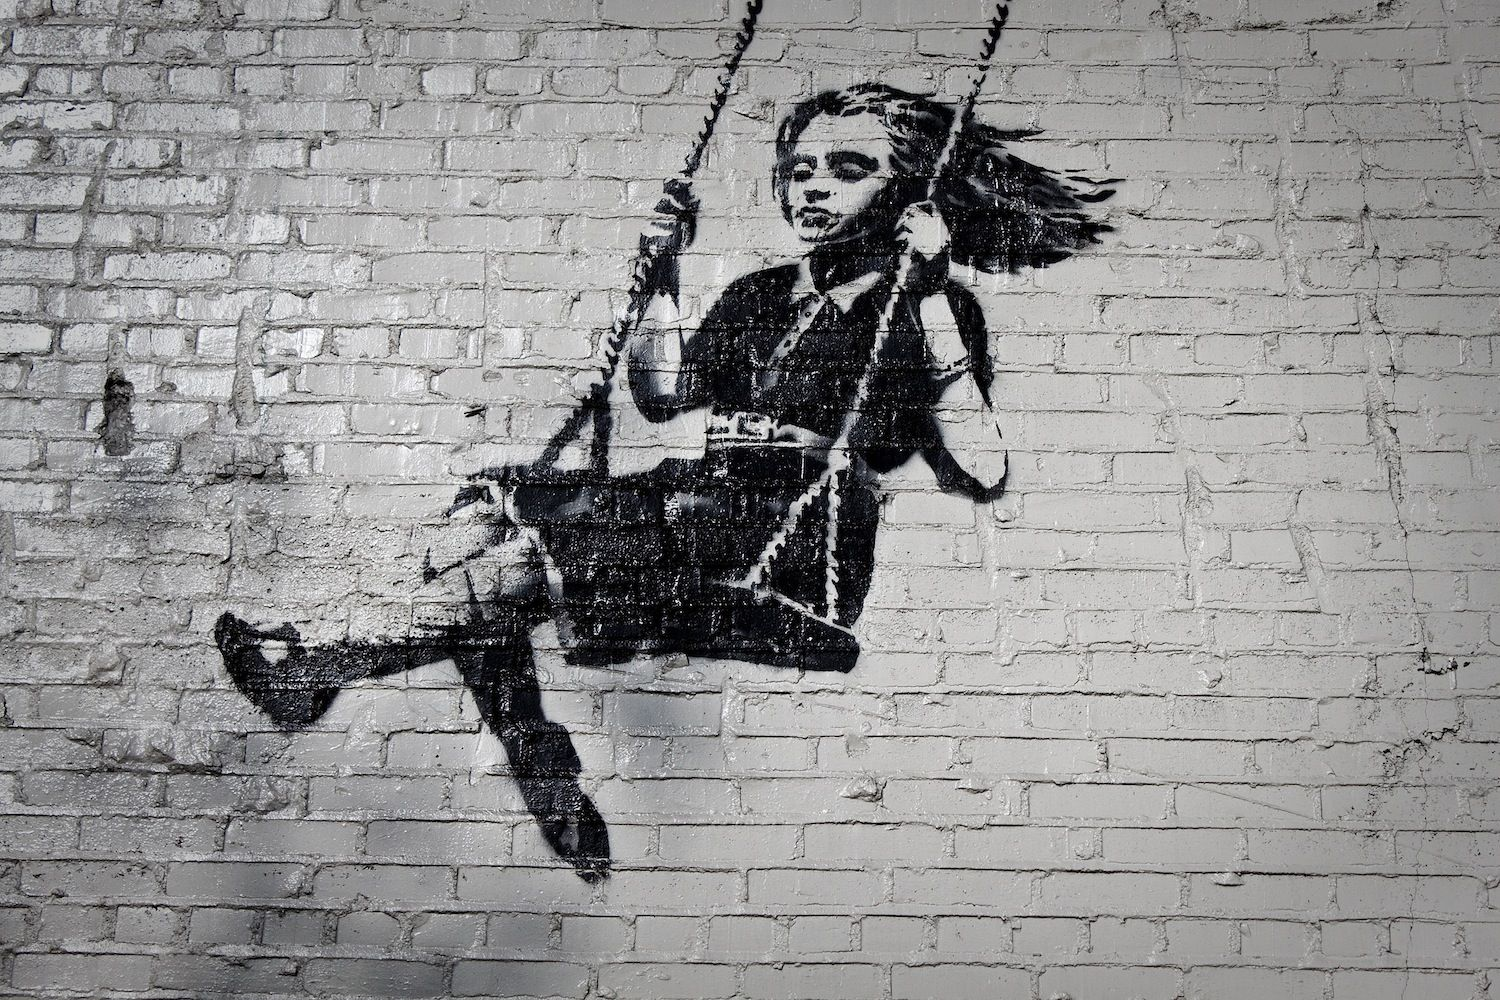 Street Art Of World's Most Famous Unidentified Person